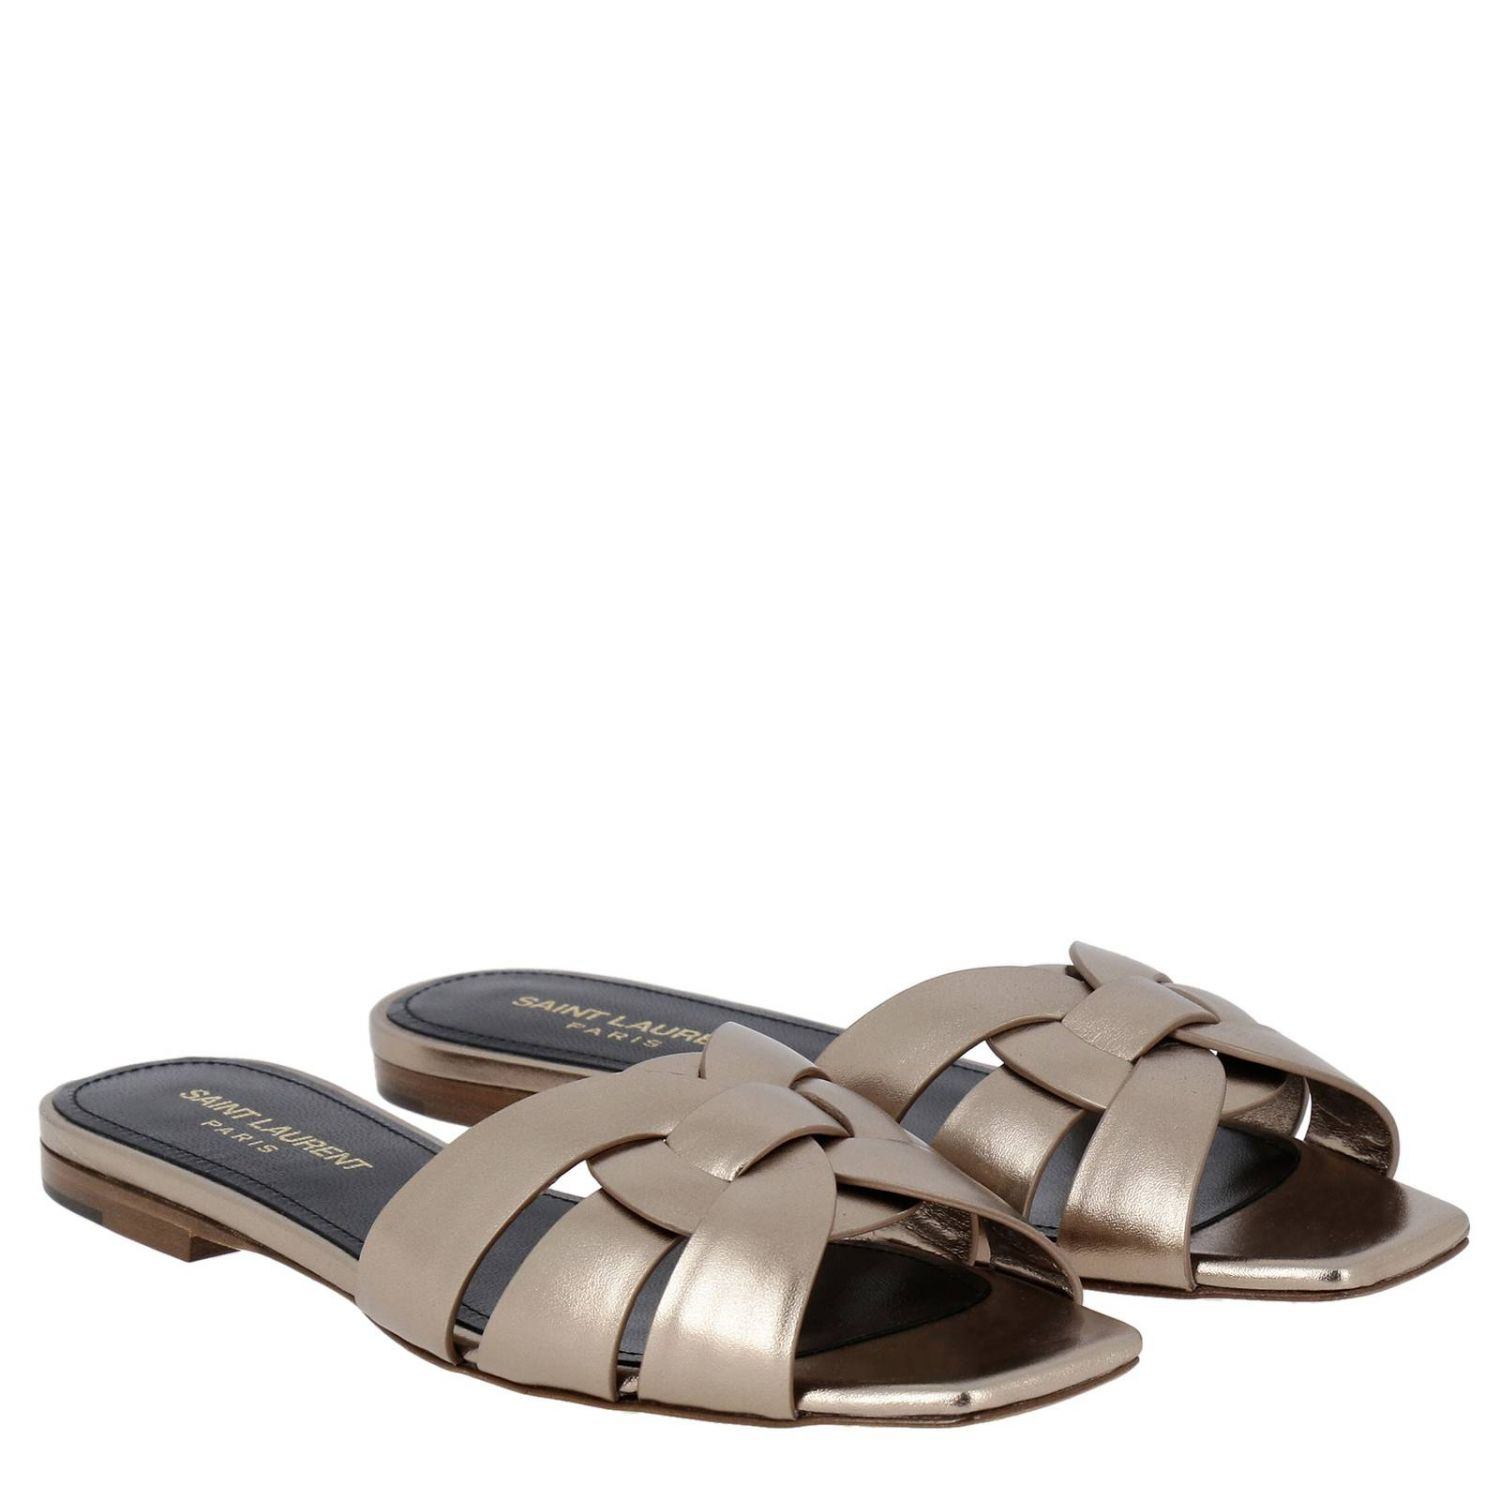 Saint Laurent Tribute sandal in soft laminated leather with crossed straps pink 2